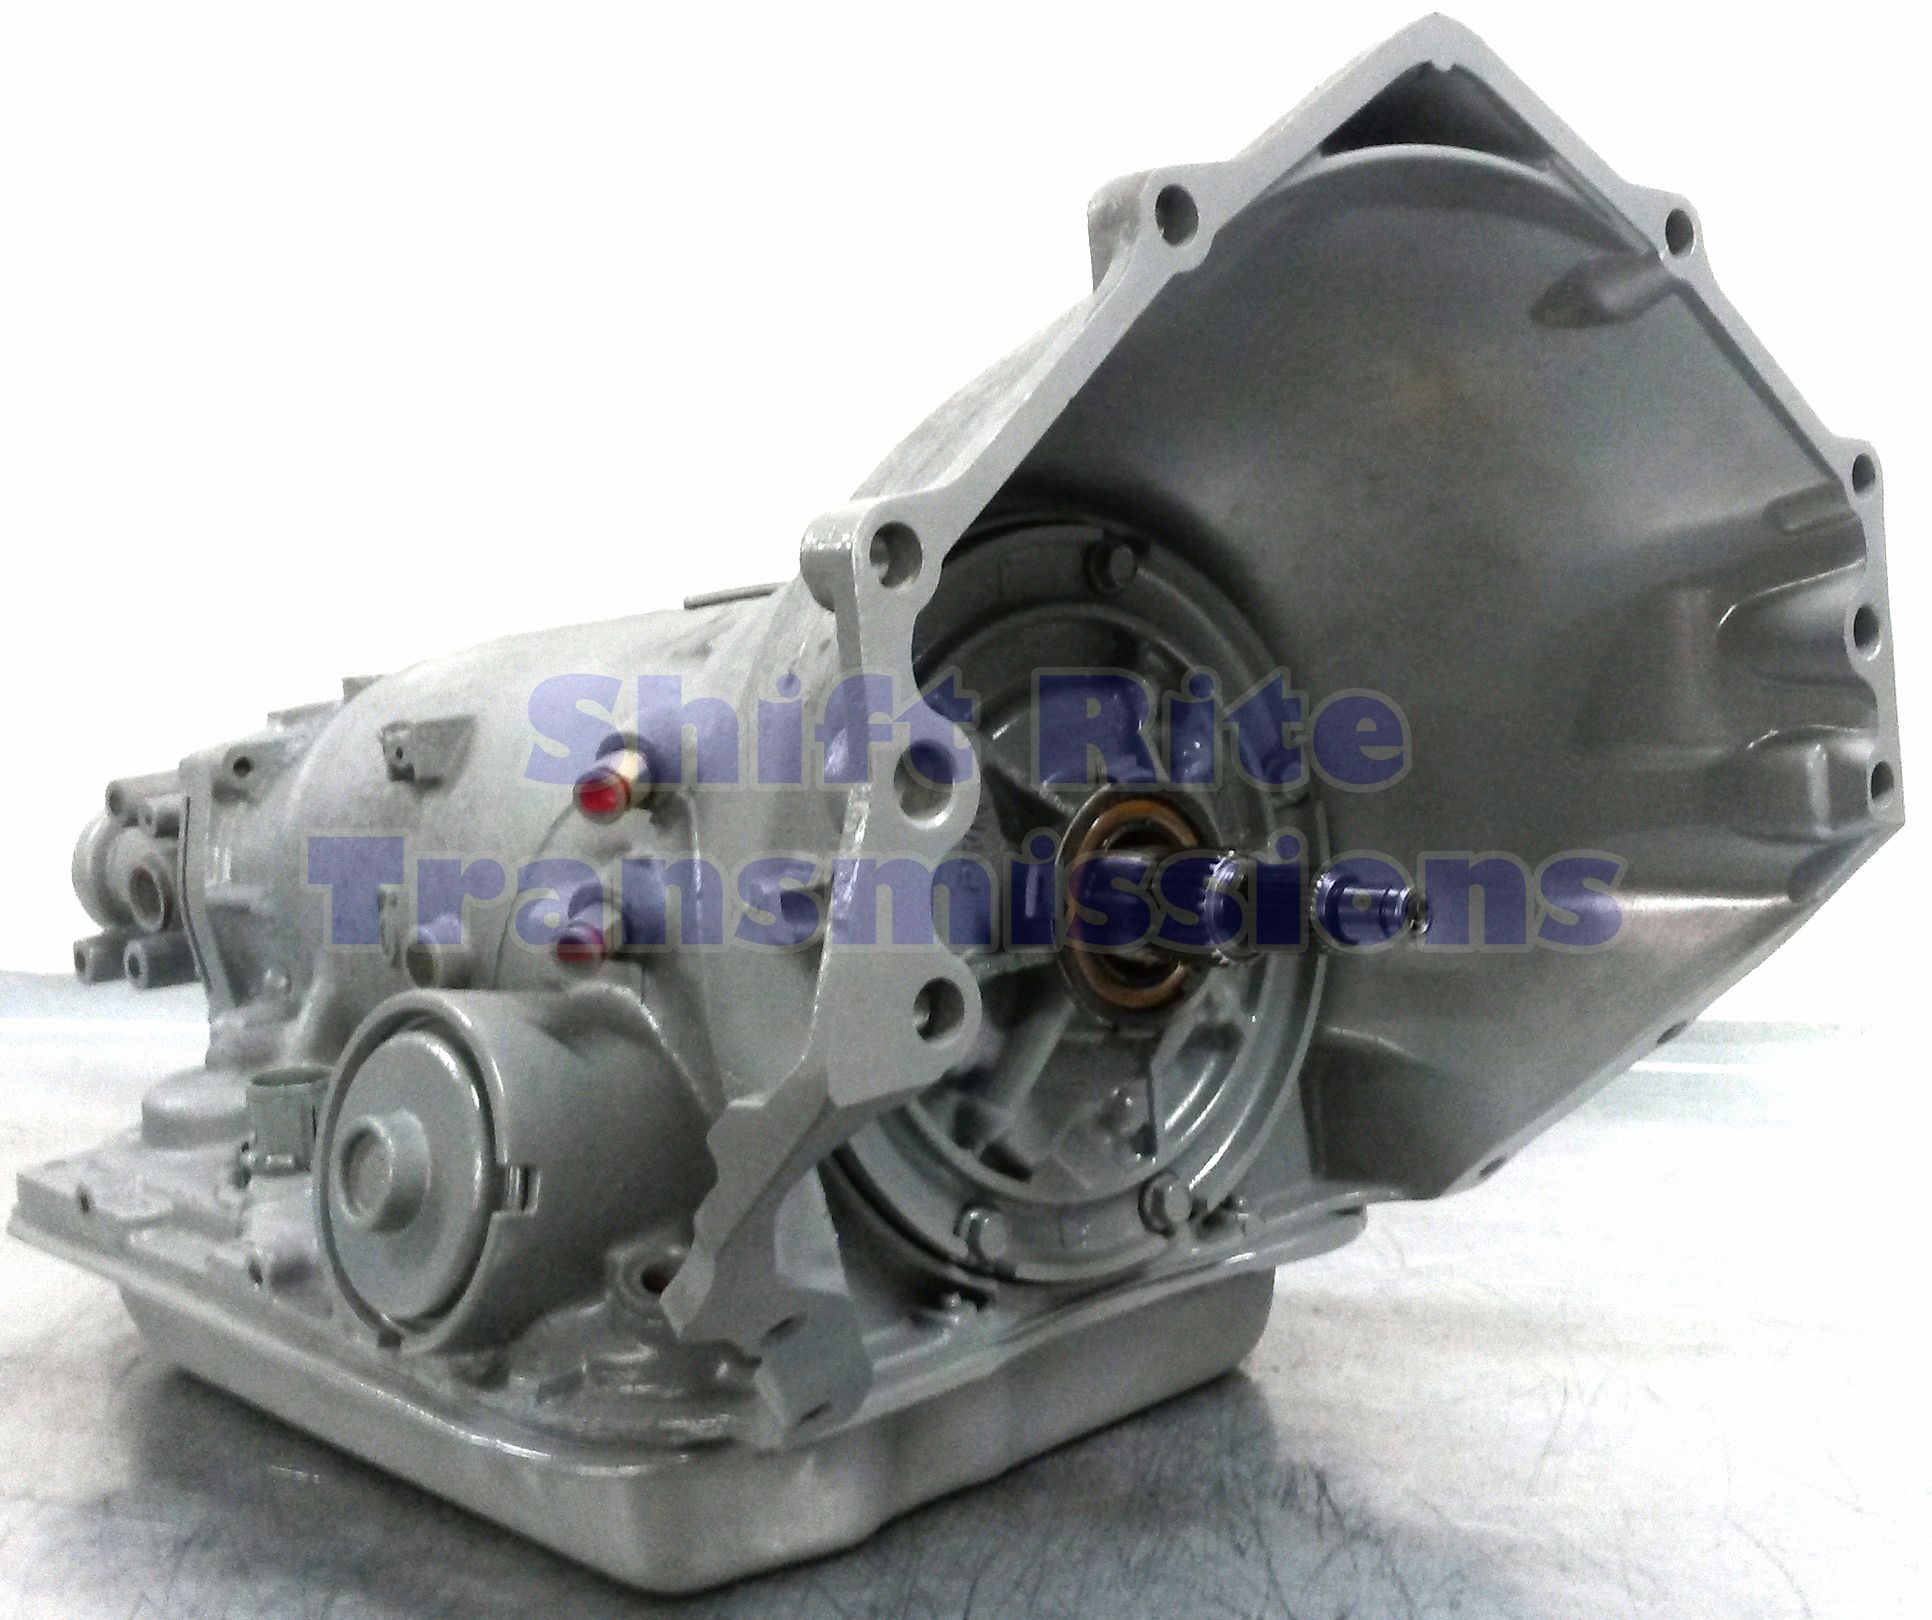 1999 chevy k1500 transmission